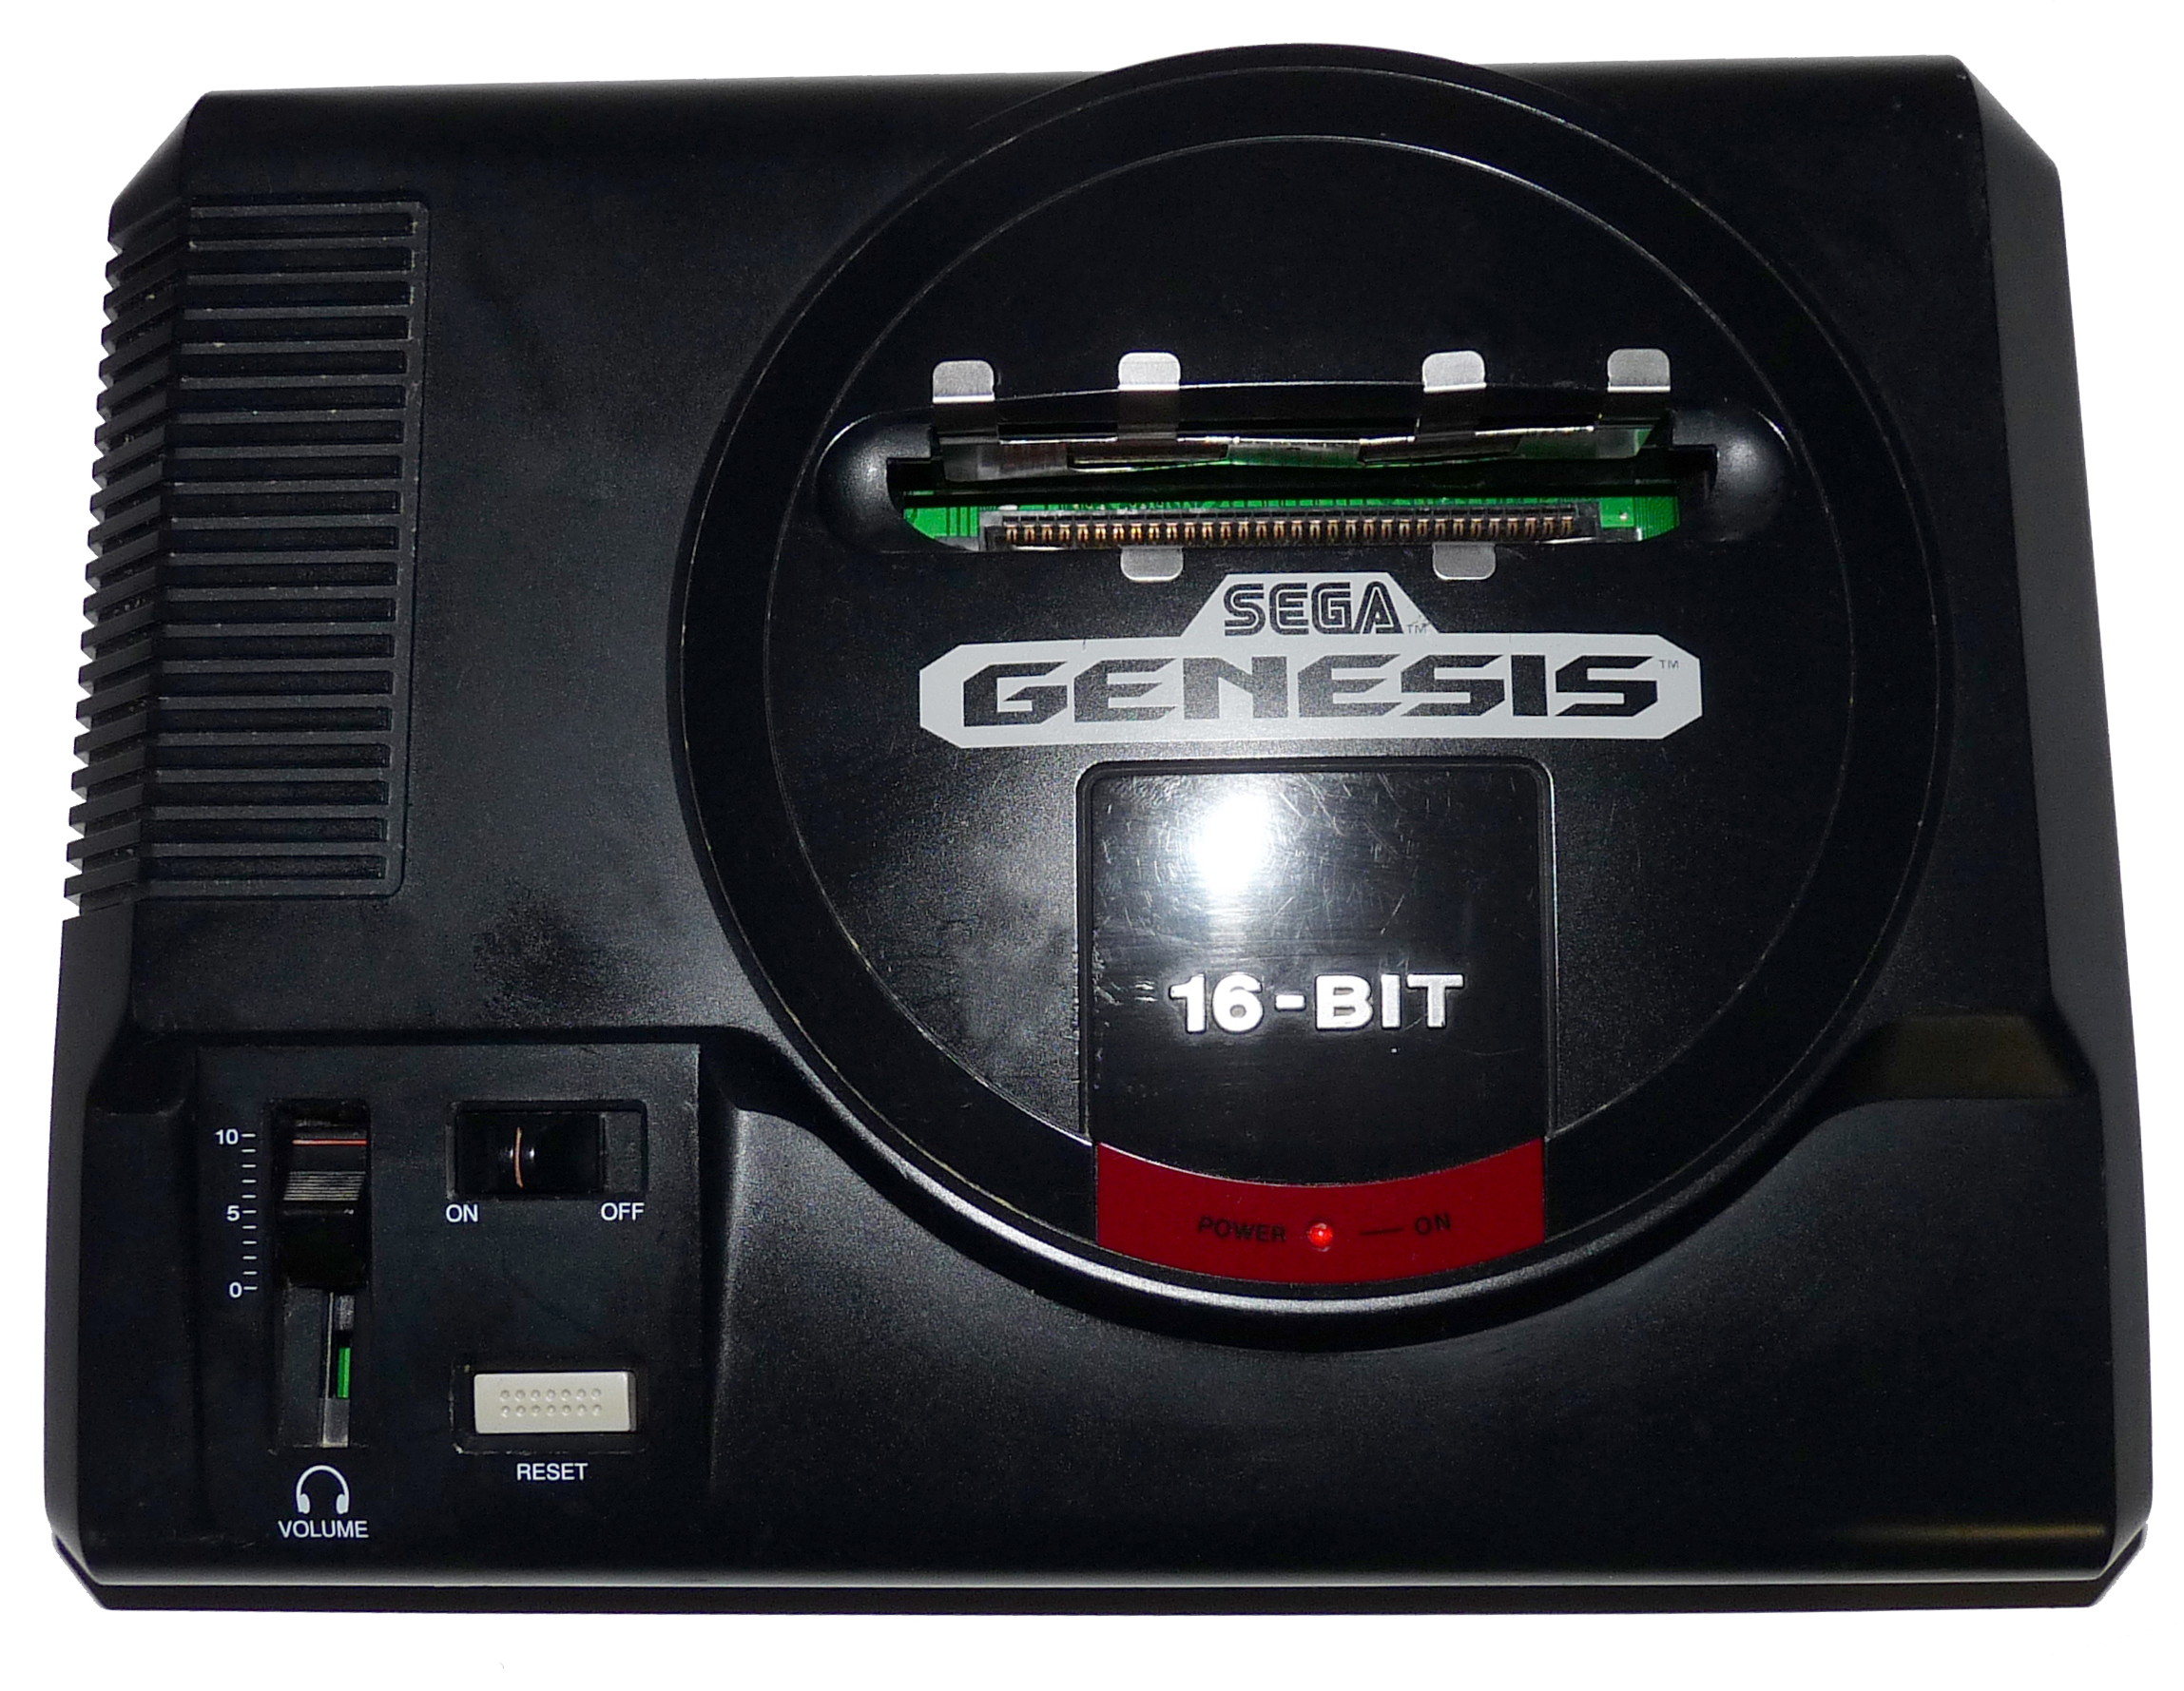 How-to-connect-Hook-Up-SEGAX-to-SEGA-Genesis-Model-1 Gametrog